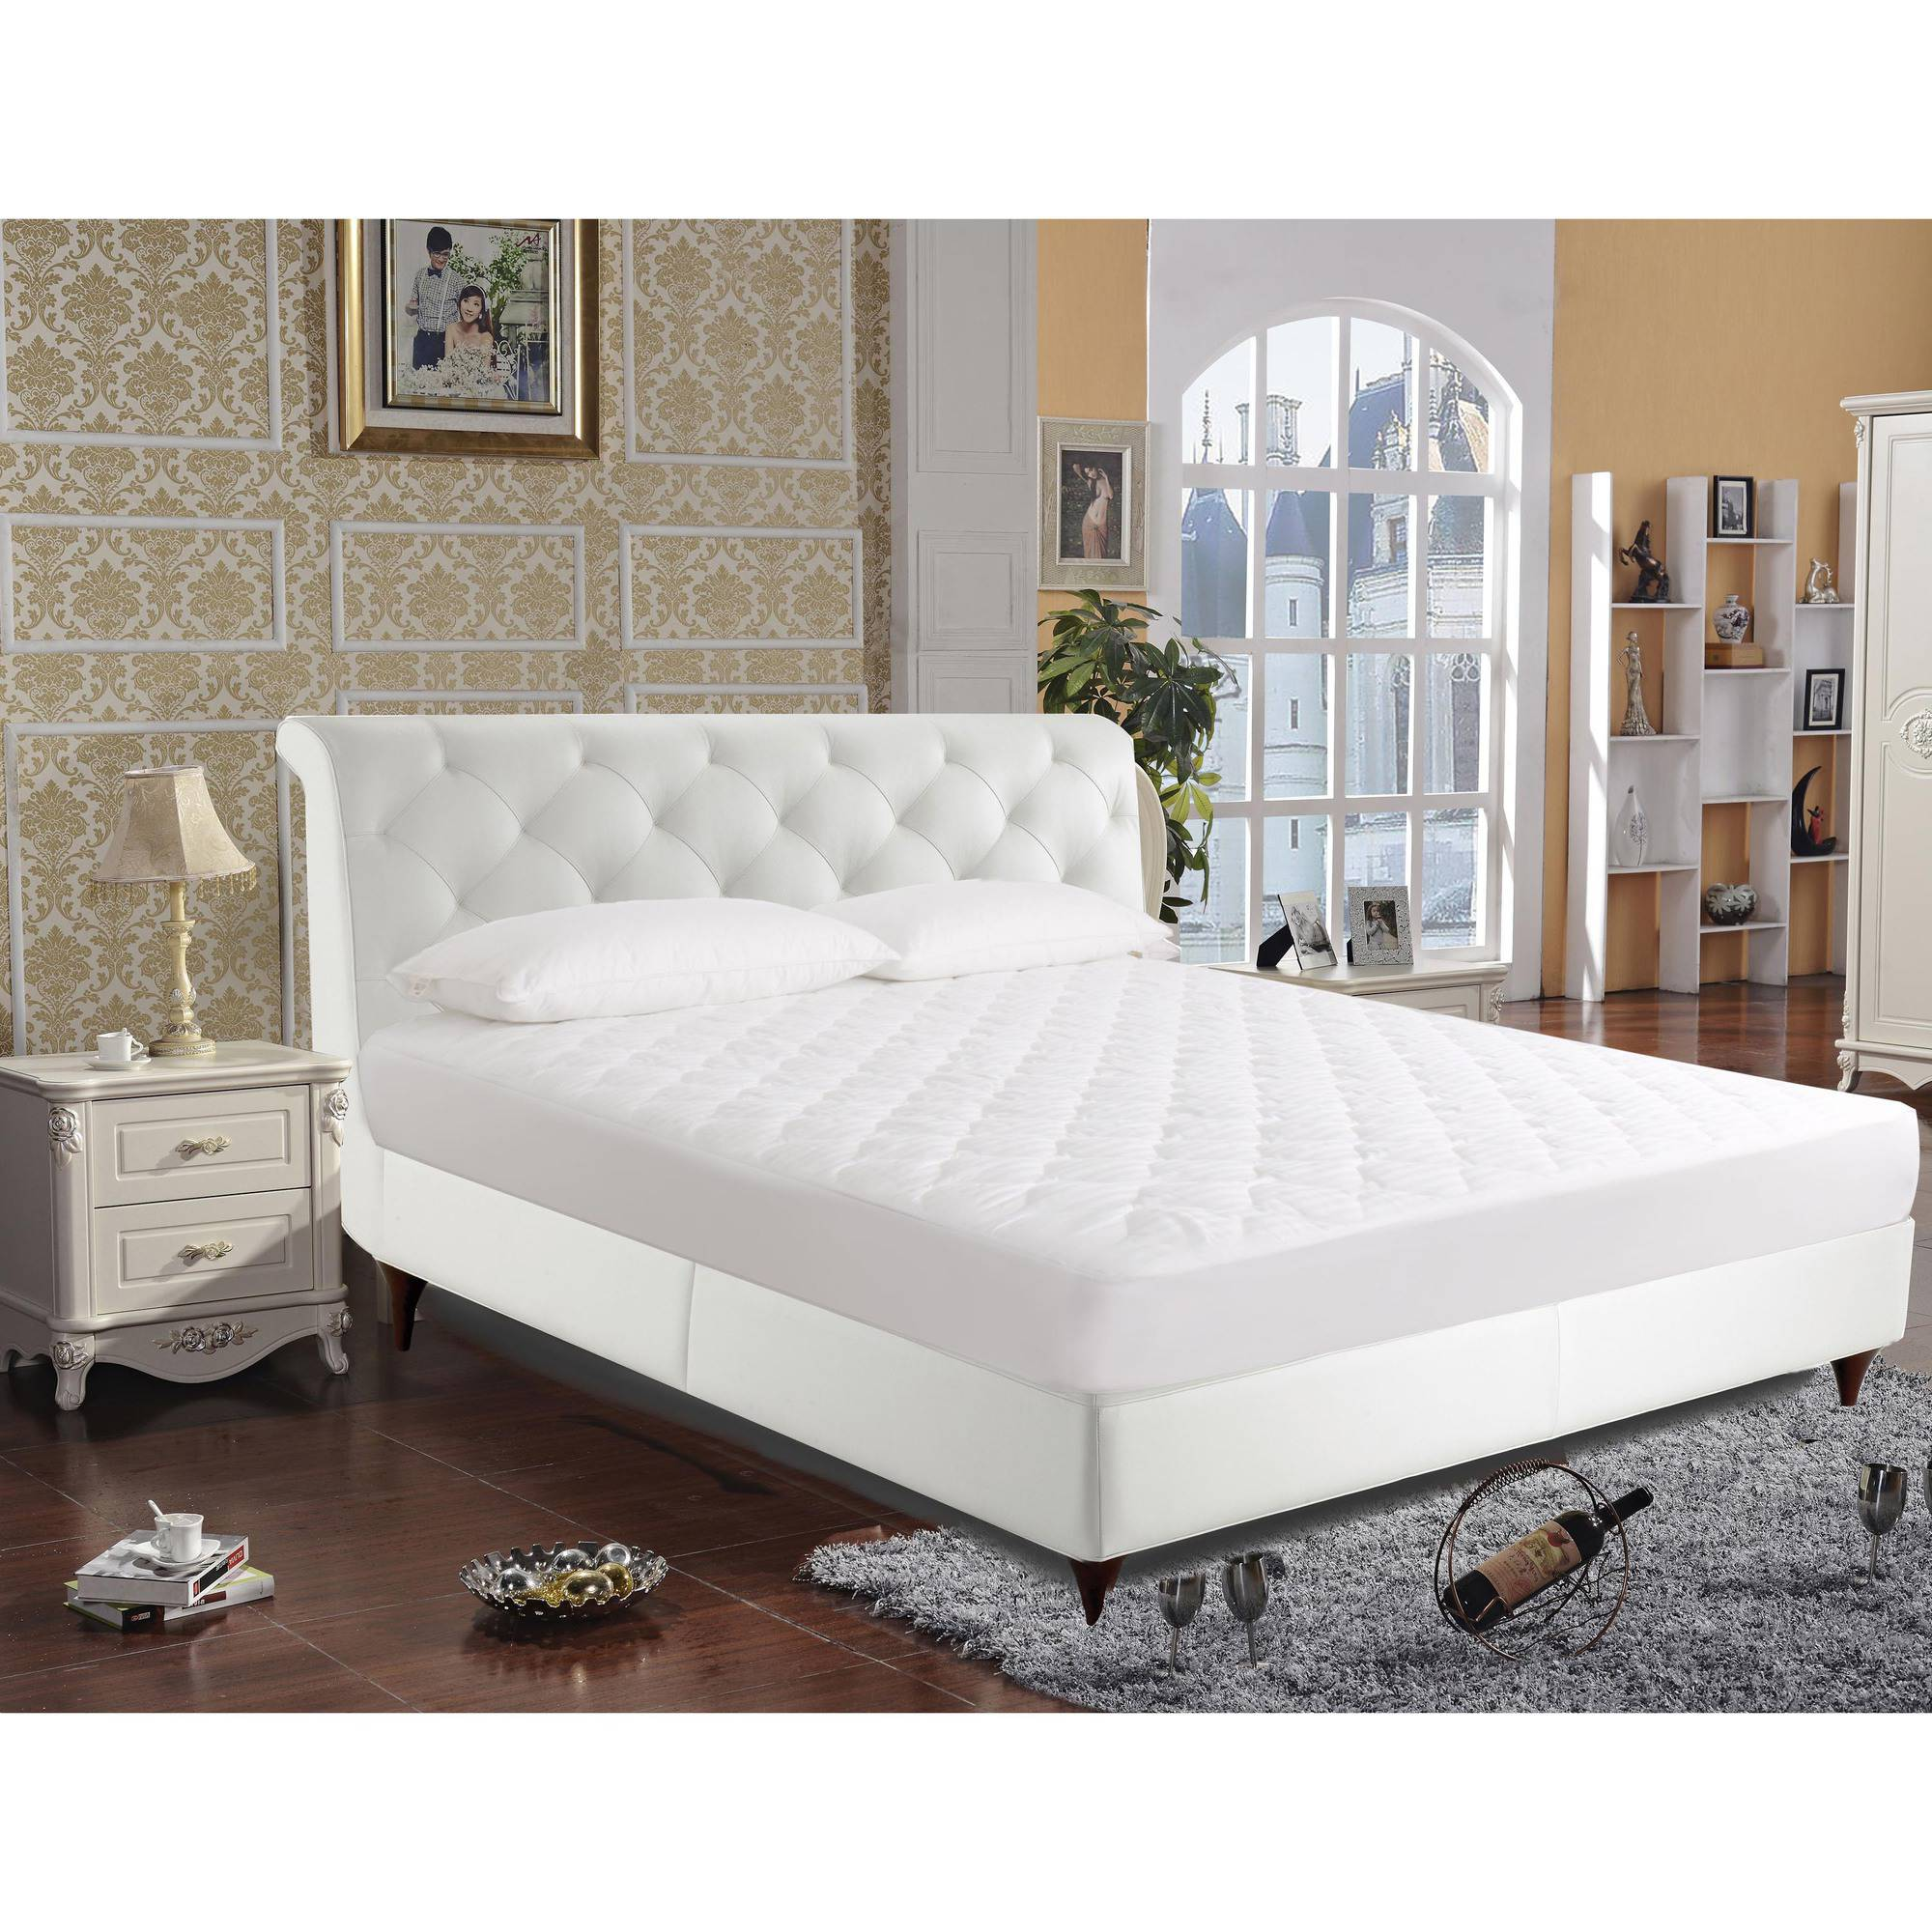 Quiet Comfort Waterproof Mattress Pad